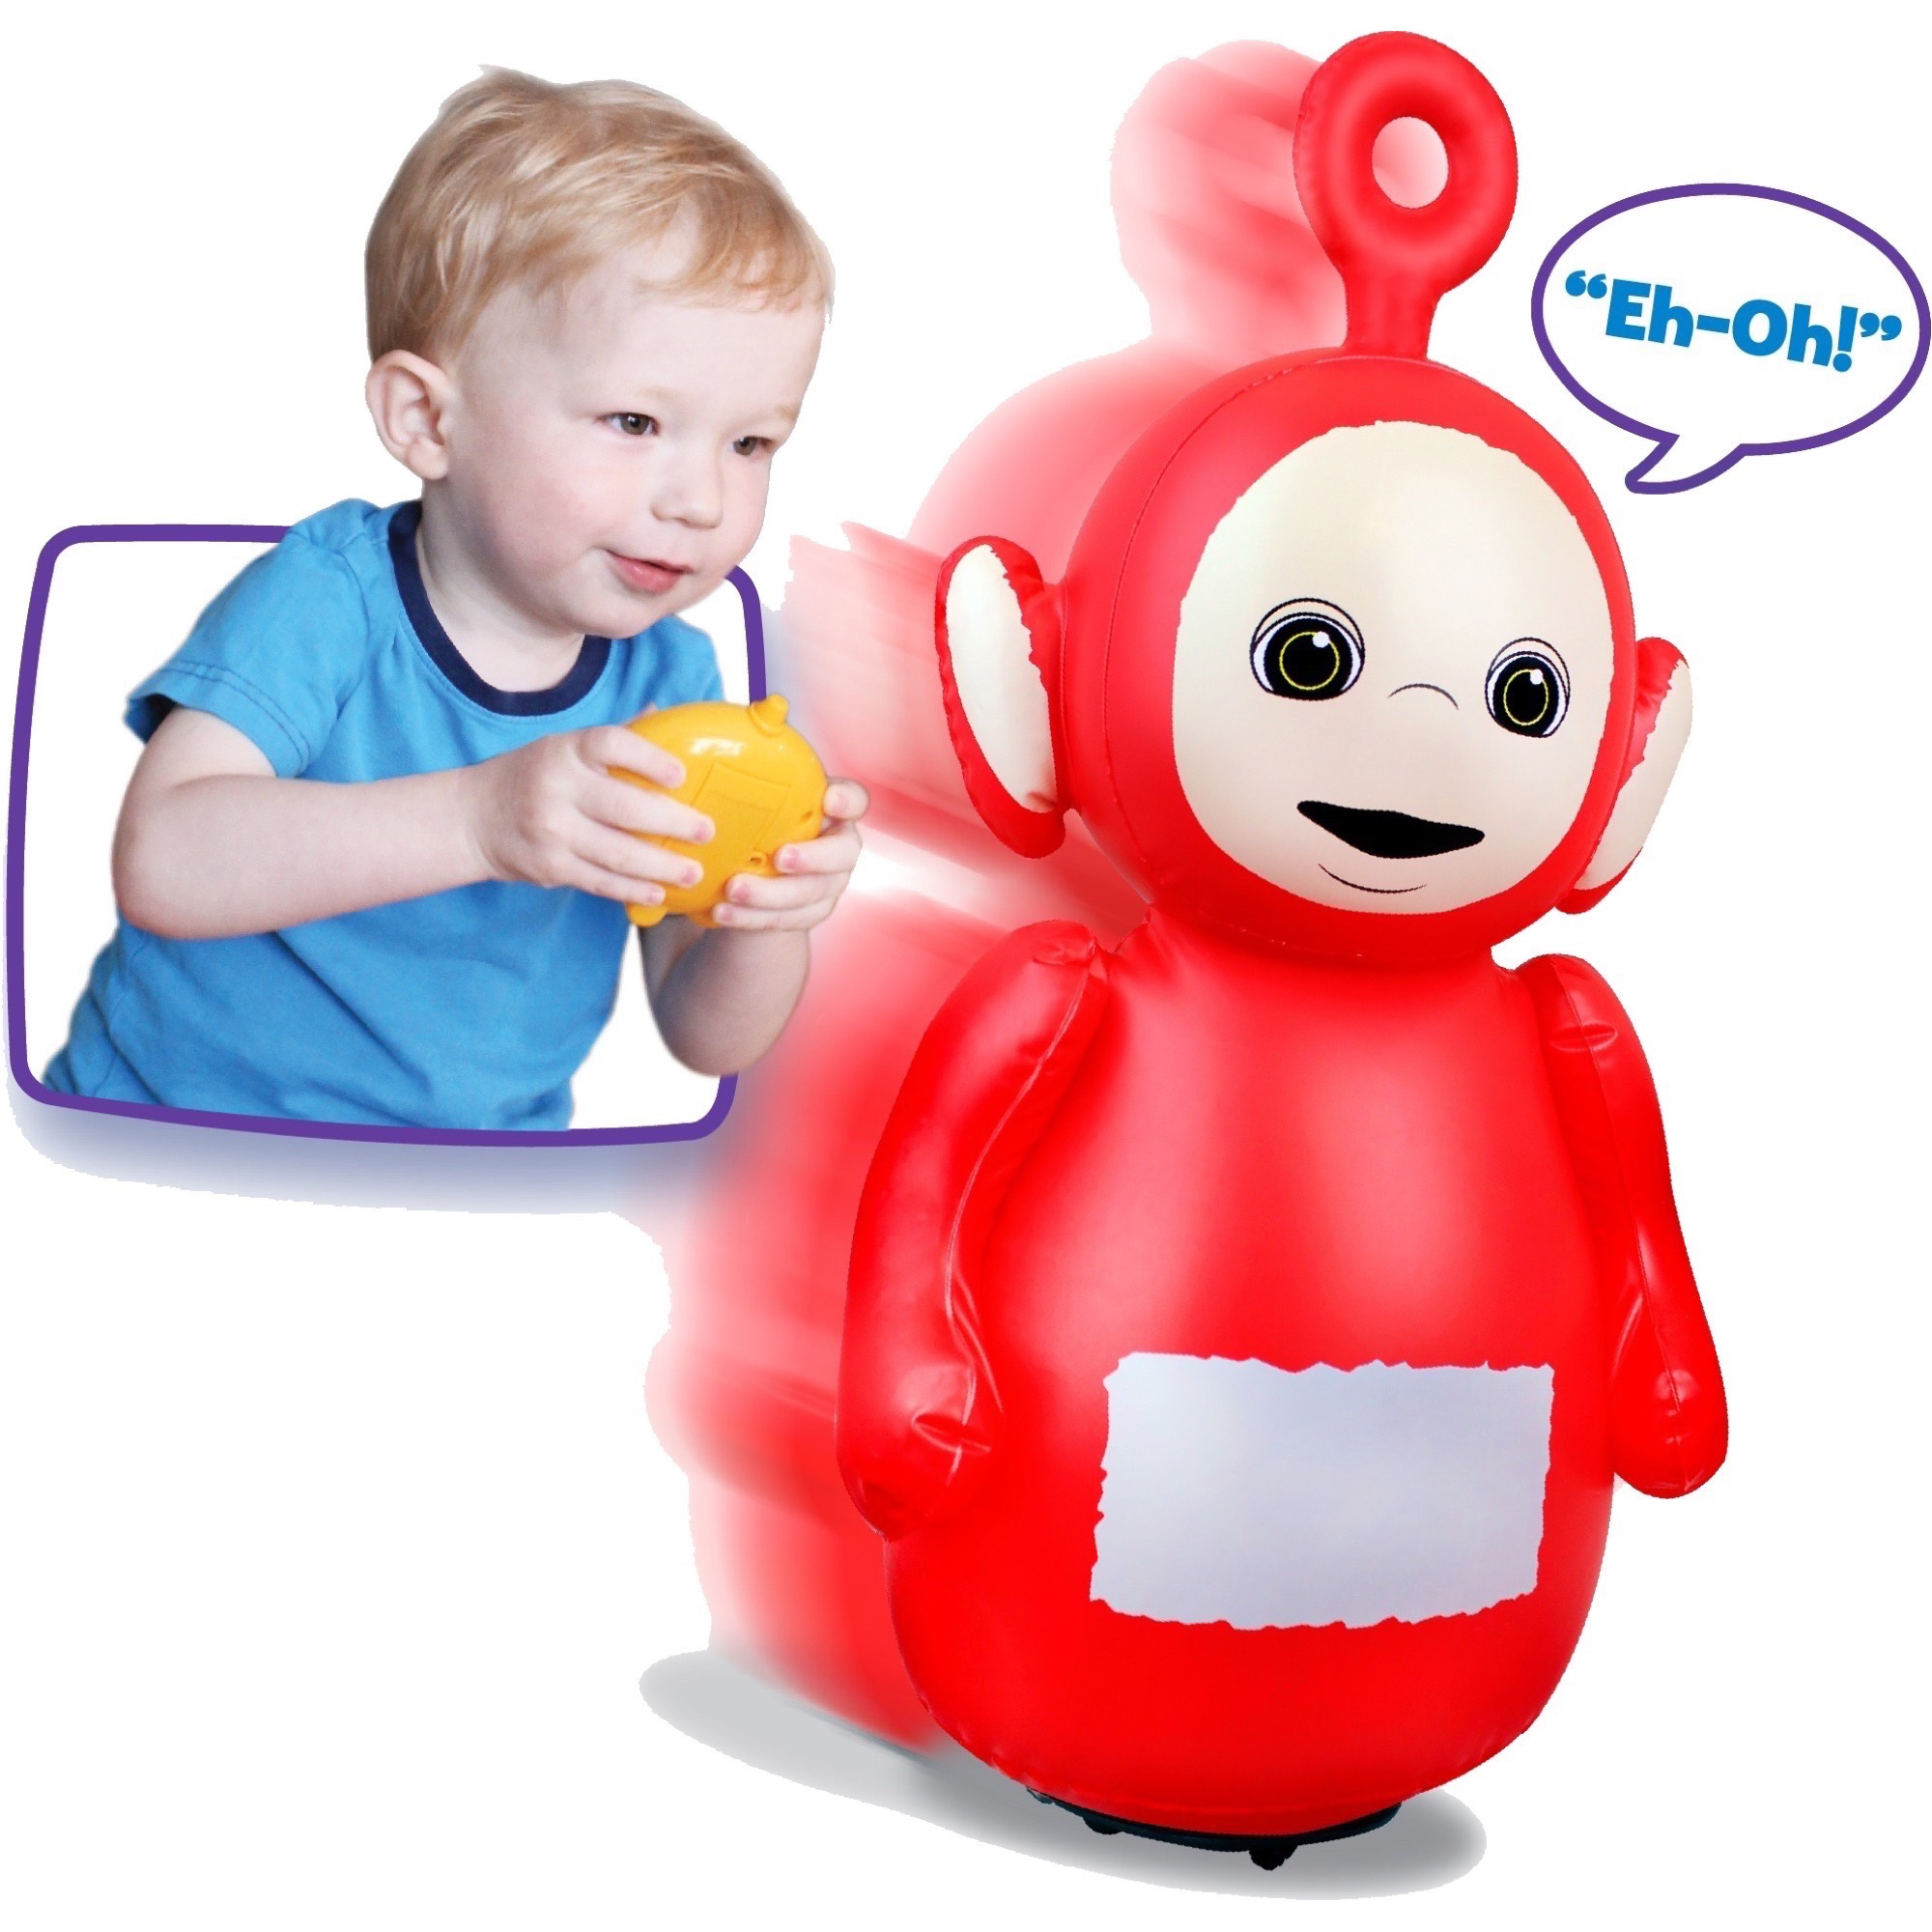 R/C Inflatable Teletubbies Po